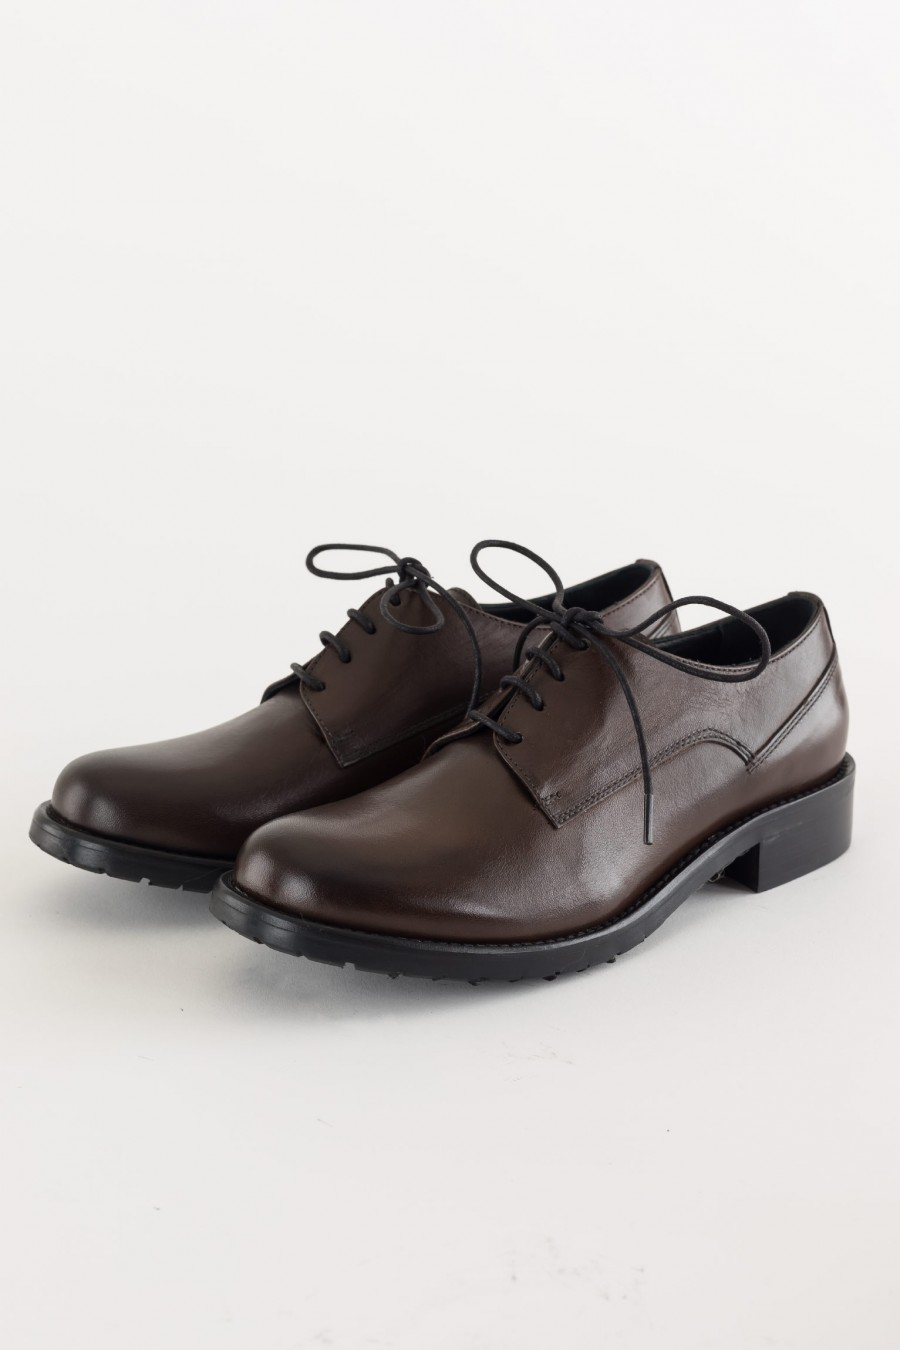 Deep brown lace ups